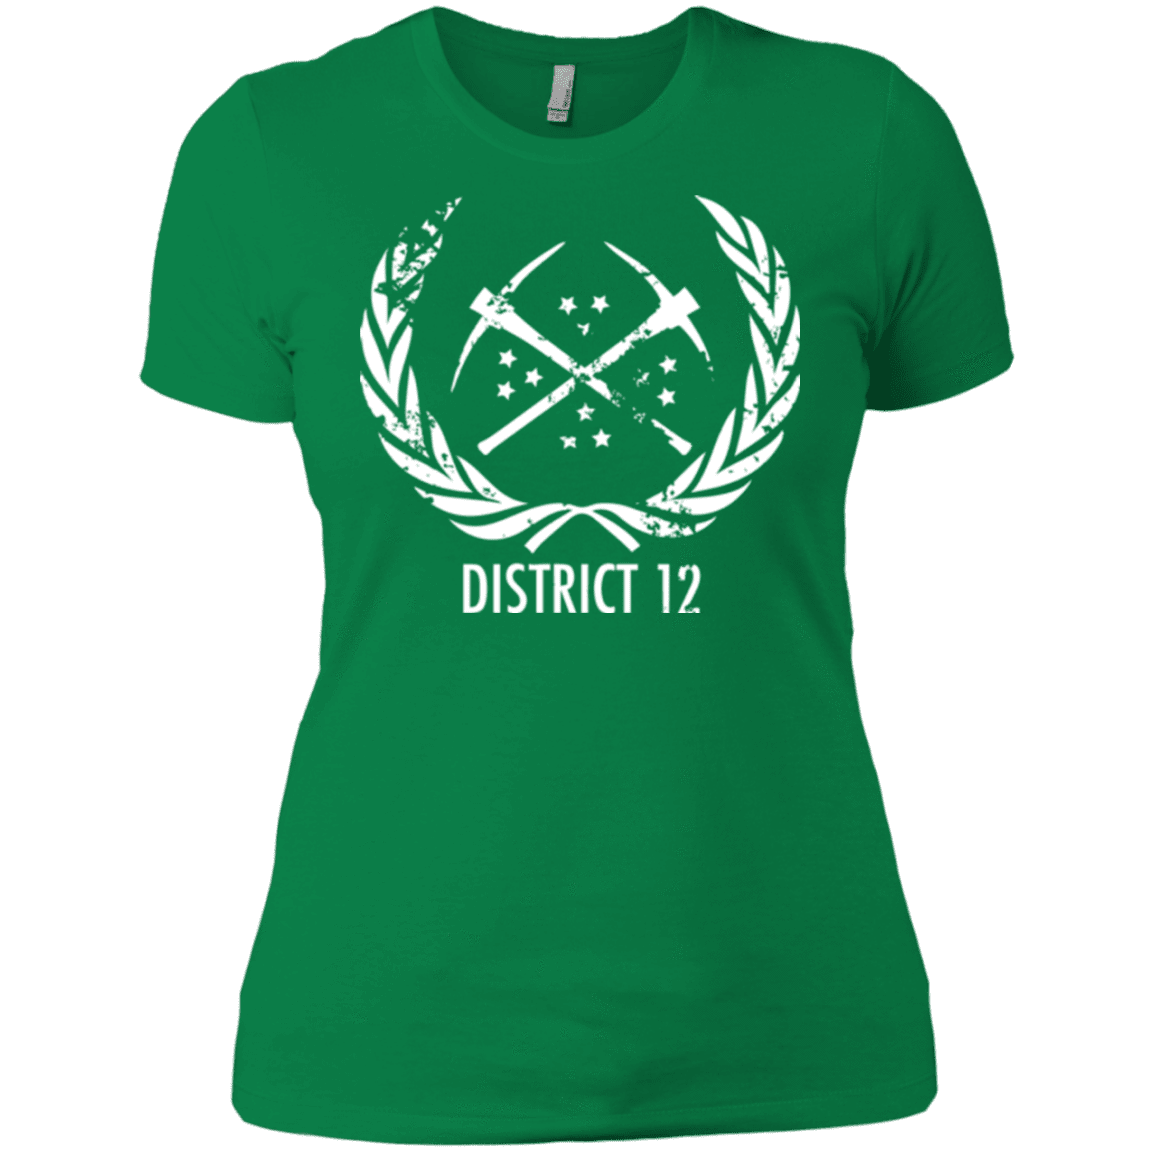 District 12 Women's Premium T-Shirt